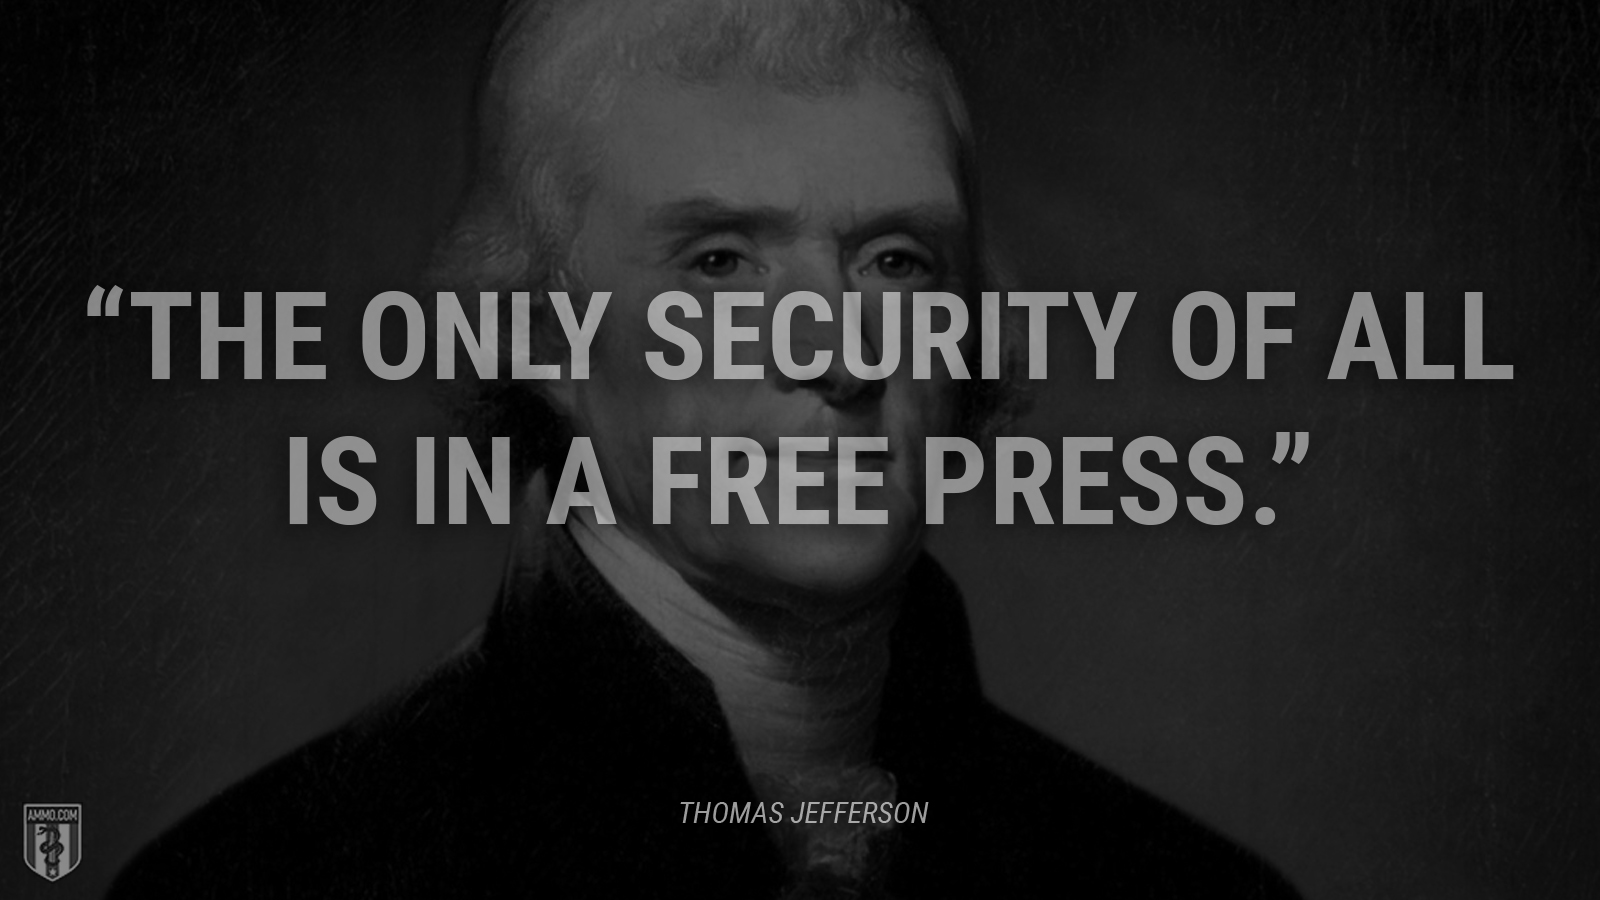 """The only security of all is in a free press."" - Thomas Jefferson"